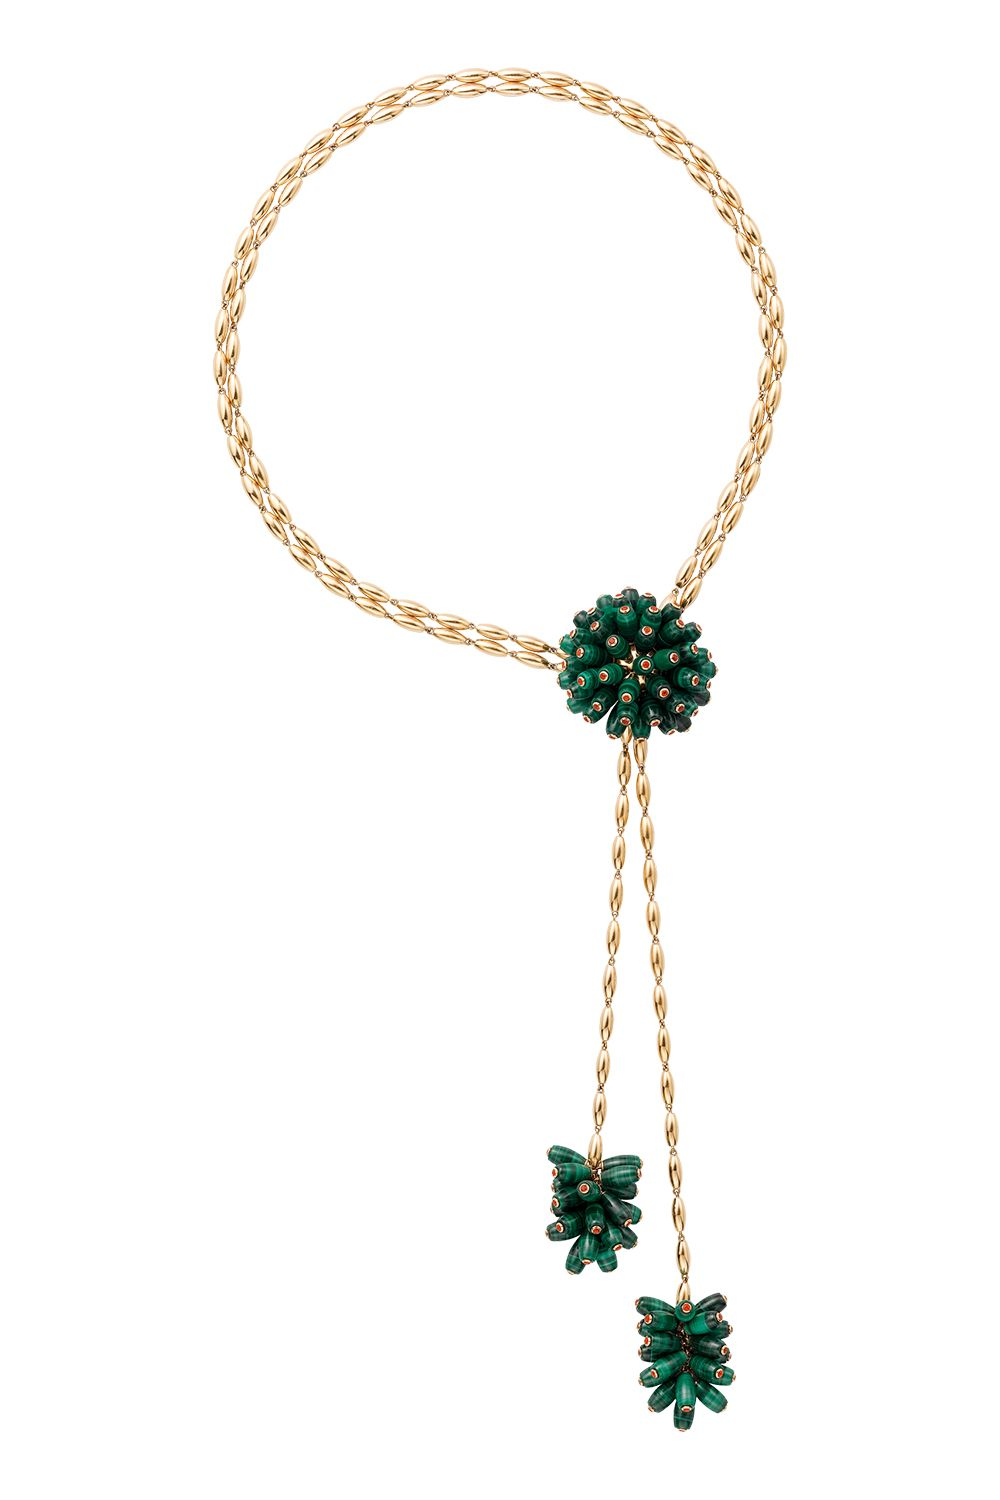 "<p>This statement necklace from the Cactus de Cartier Collection feels sexy and beachy—making it perfect for any occasion.&nbsp&#x3B;<span class=""redactor-invisible-space"" data-verified=""redactor"" data-redactor-tag=""span"" data-redactor-class=""redactor-invisible-space""></span></p><p><em data-redactor-tag=""em"" data-verified=""redactor"">Cartier Paris Nouvelle Vauge Necklace, $67,500</em></p><p><strong data-redactor-tag=""strong"" data-verified=""redactor"">BUY IT:&nbsp&#x3B;</strong><a href=""http://www.cartier.com/en-us/collections/jewelry/categories/necklaces/paris-nouvelle-vague/h7000085-paris-nouvelle-vague-necklace.html"" data-tracking-id=""recirc-text-link"">www.cartier.com</a><span class=""redactor-invisible-space"" data-verified=""redactor"" data-redactor-tag=""span"" data-redactor-class=""redactor-invisible-space""> or contact Cartier.</span></p>"